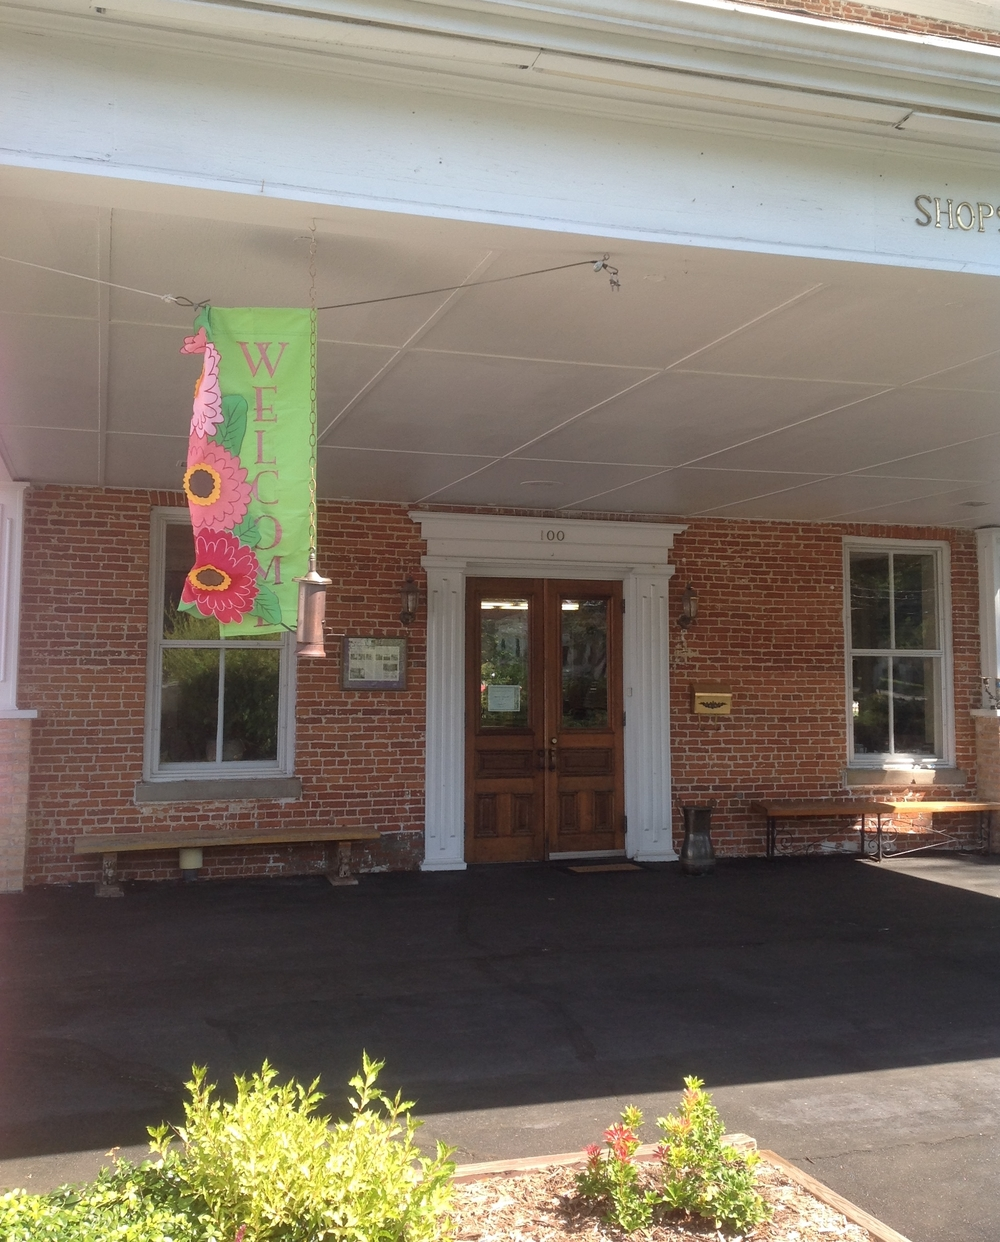 The front entrance to Quilts at the Marshall House shop.